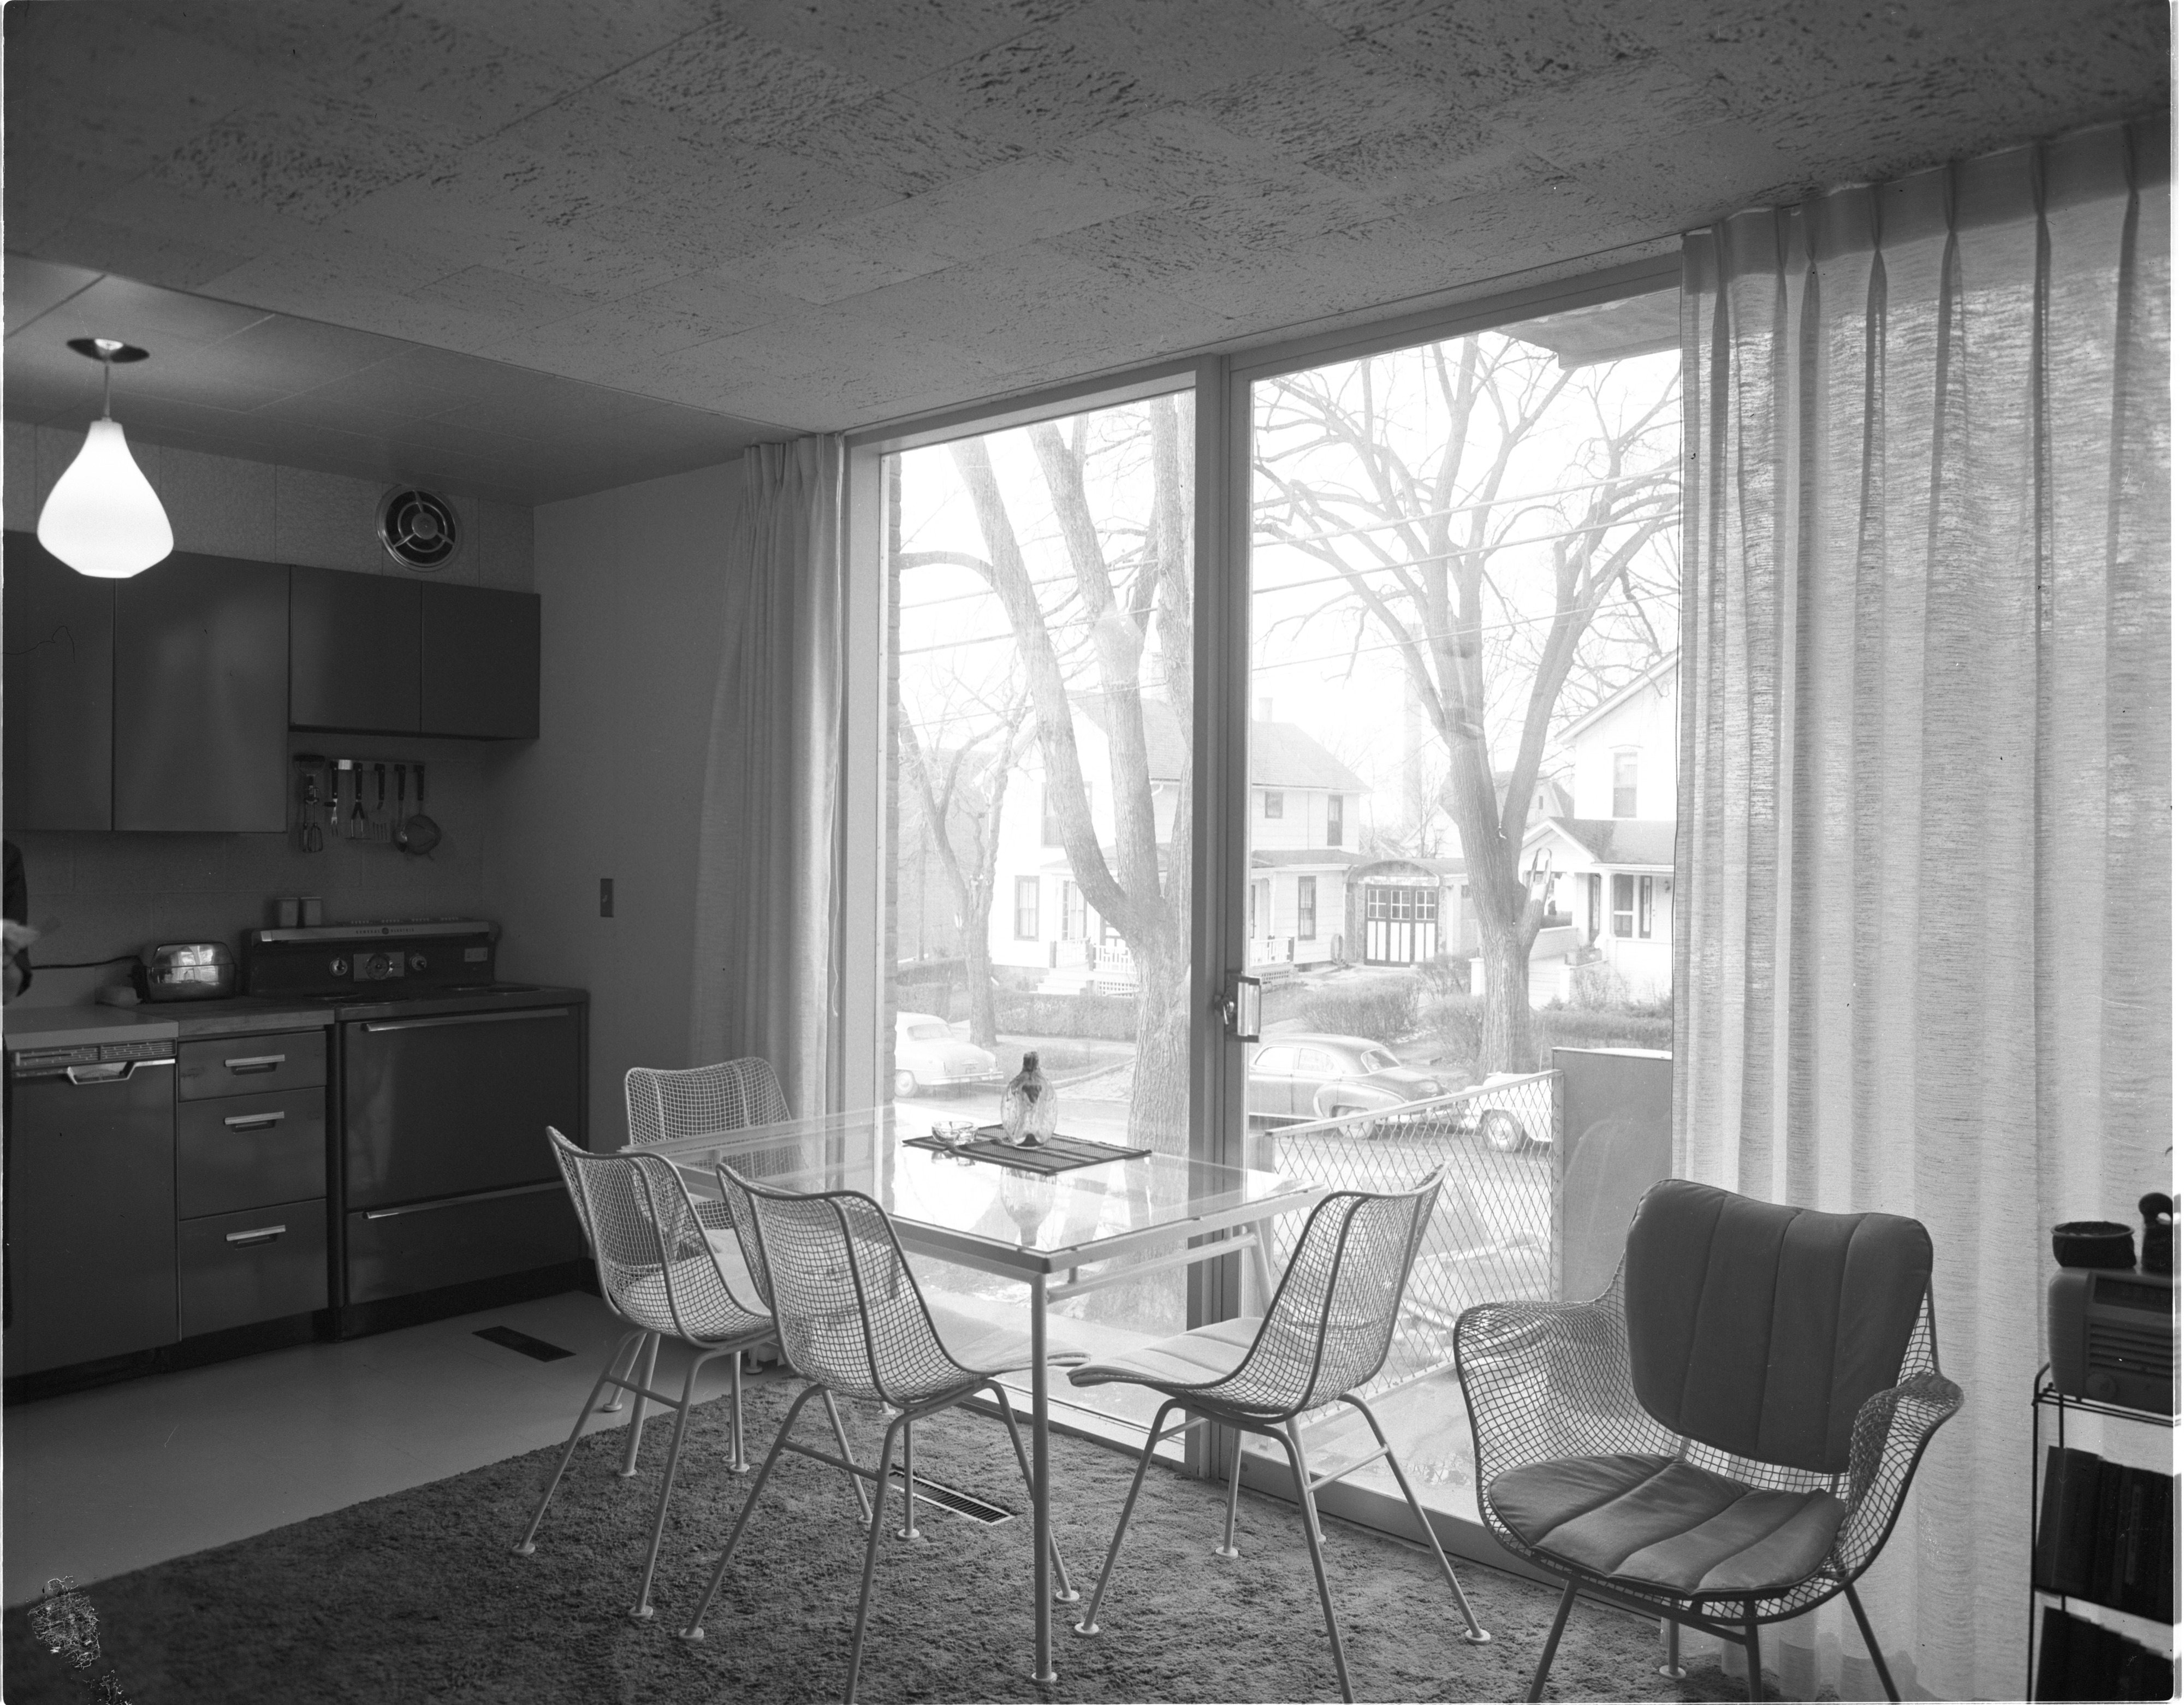 Interior Of Newly Constructed Geddes Apartments - View Out Balcony Window, November 1957 image